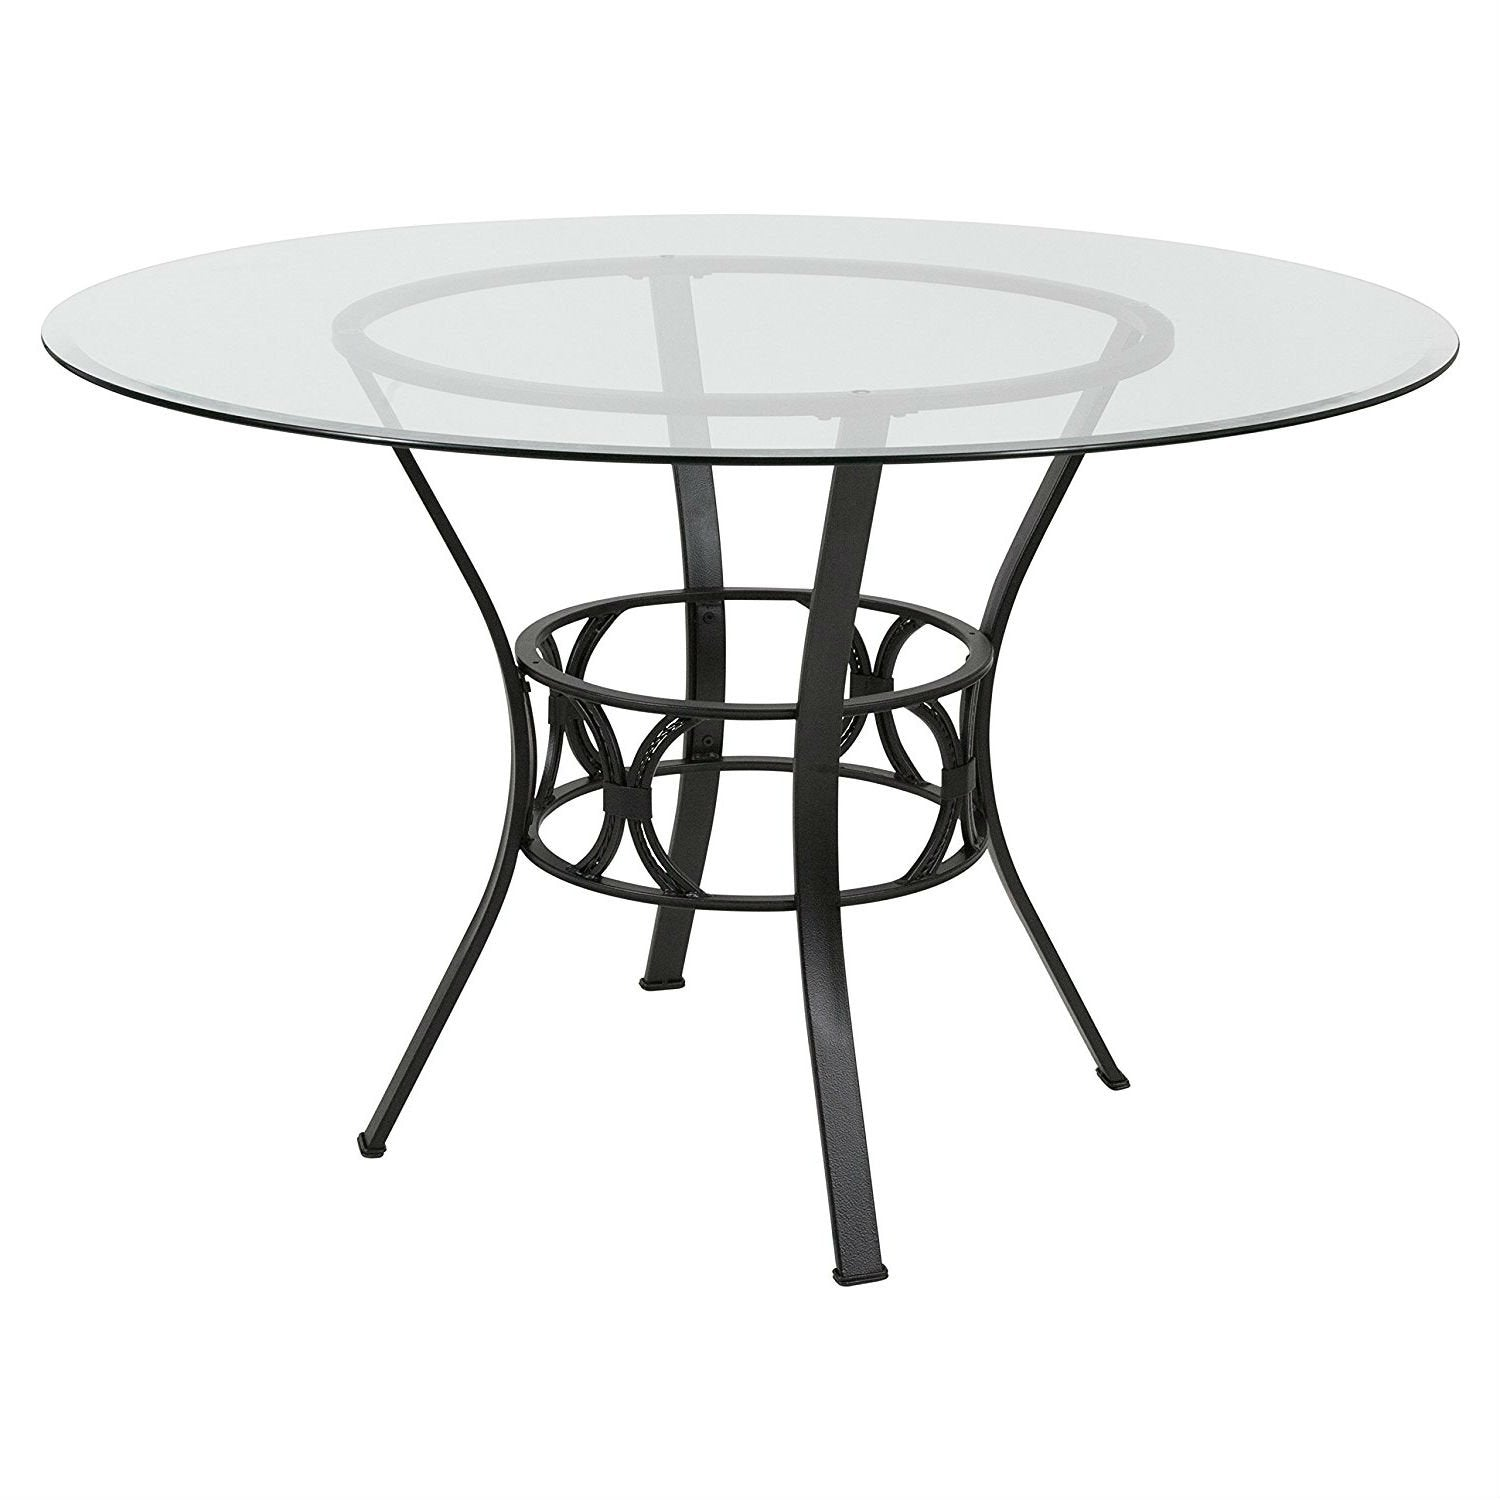 Round 48-inch Clear Glass Dining Table with Black Metal Frame